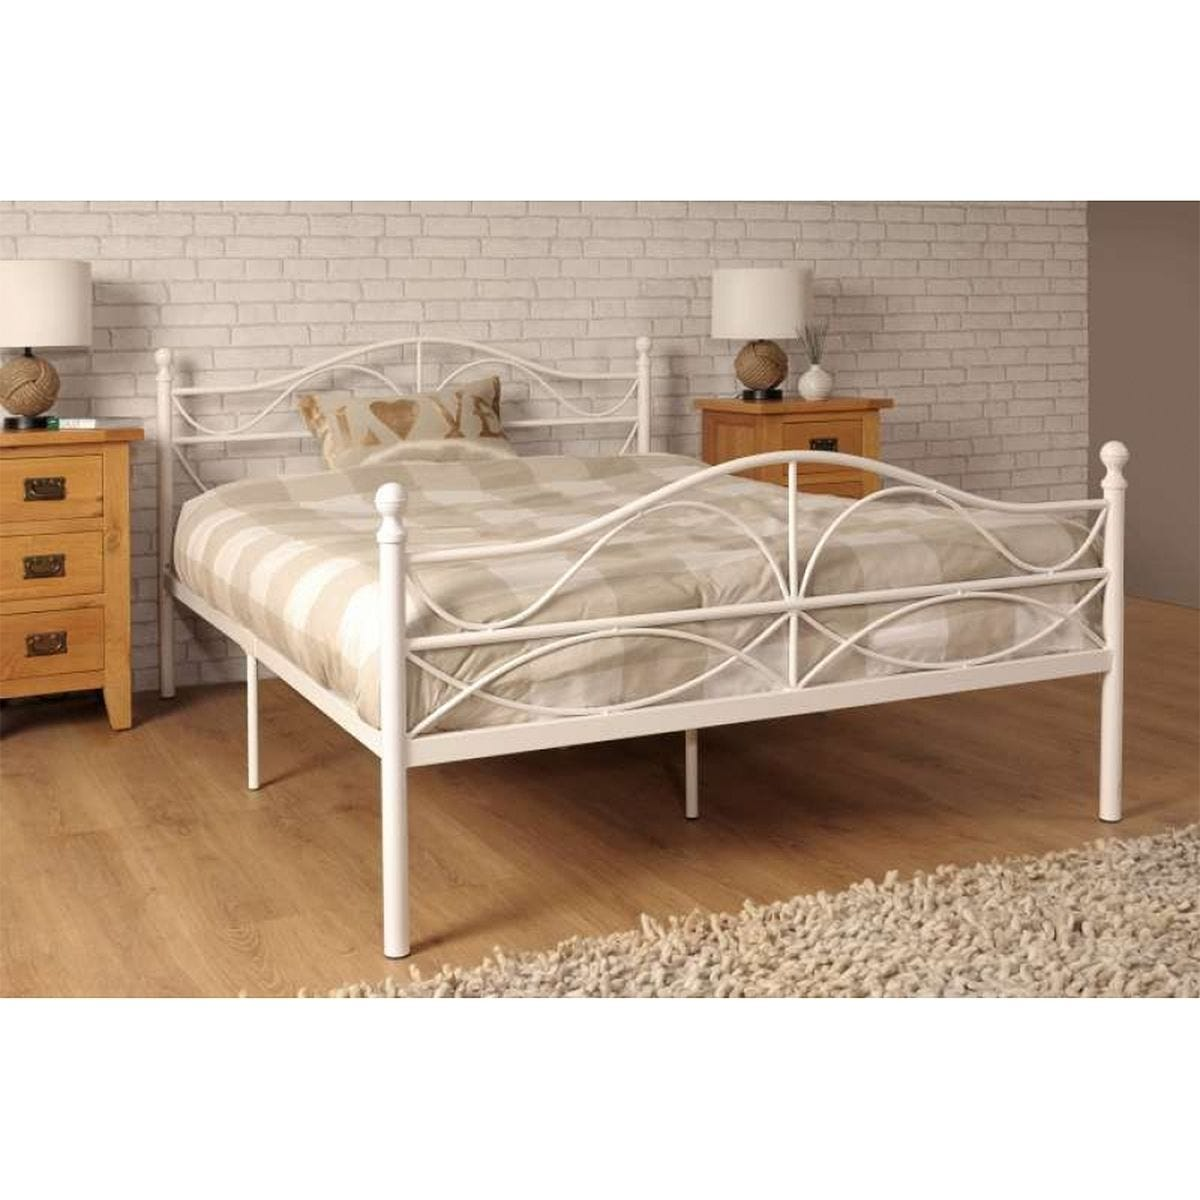 Willow King Bed Frame - White